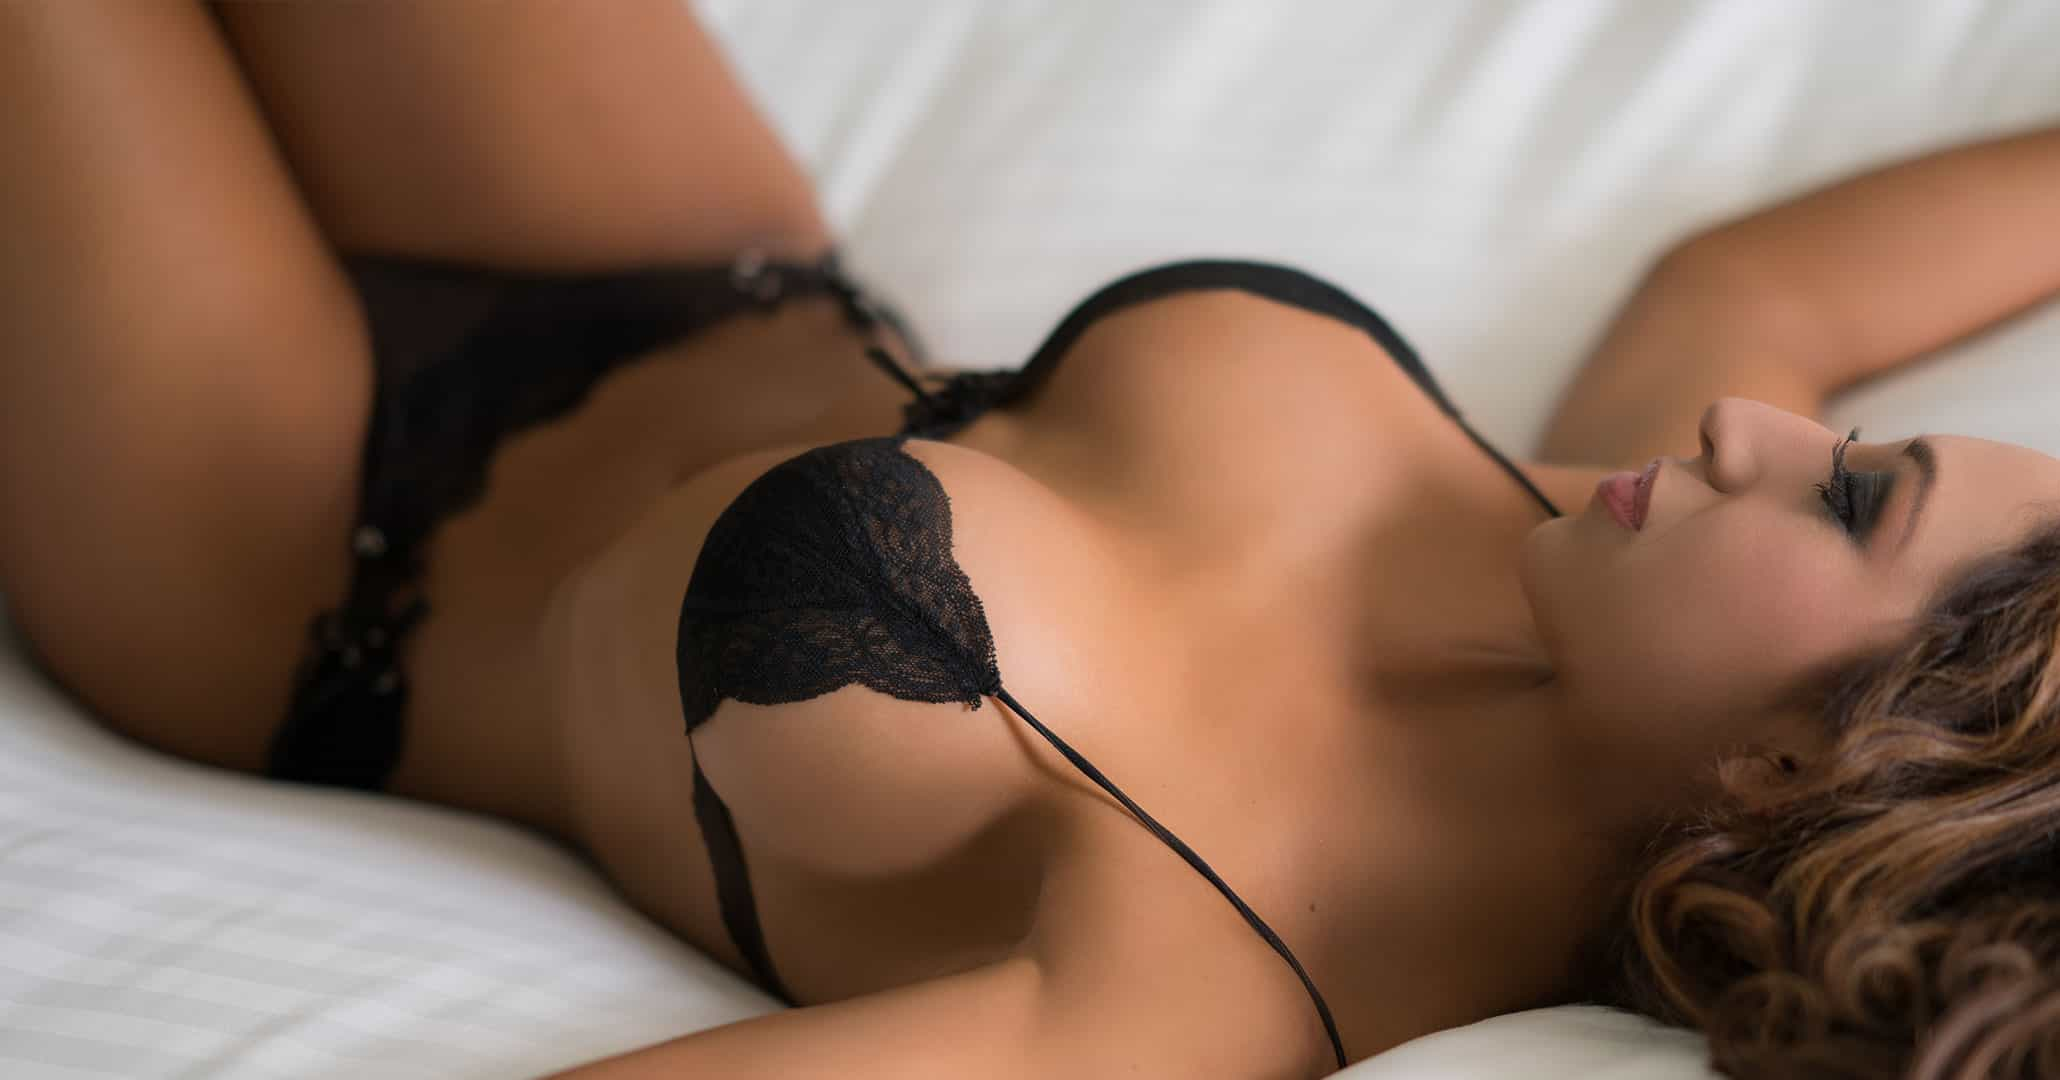 latina-lying-on-bed-in-black-lingerie